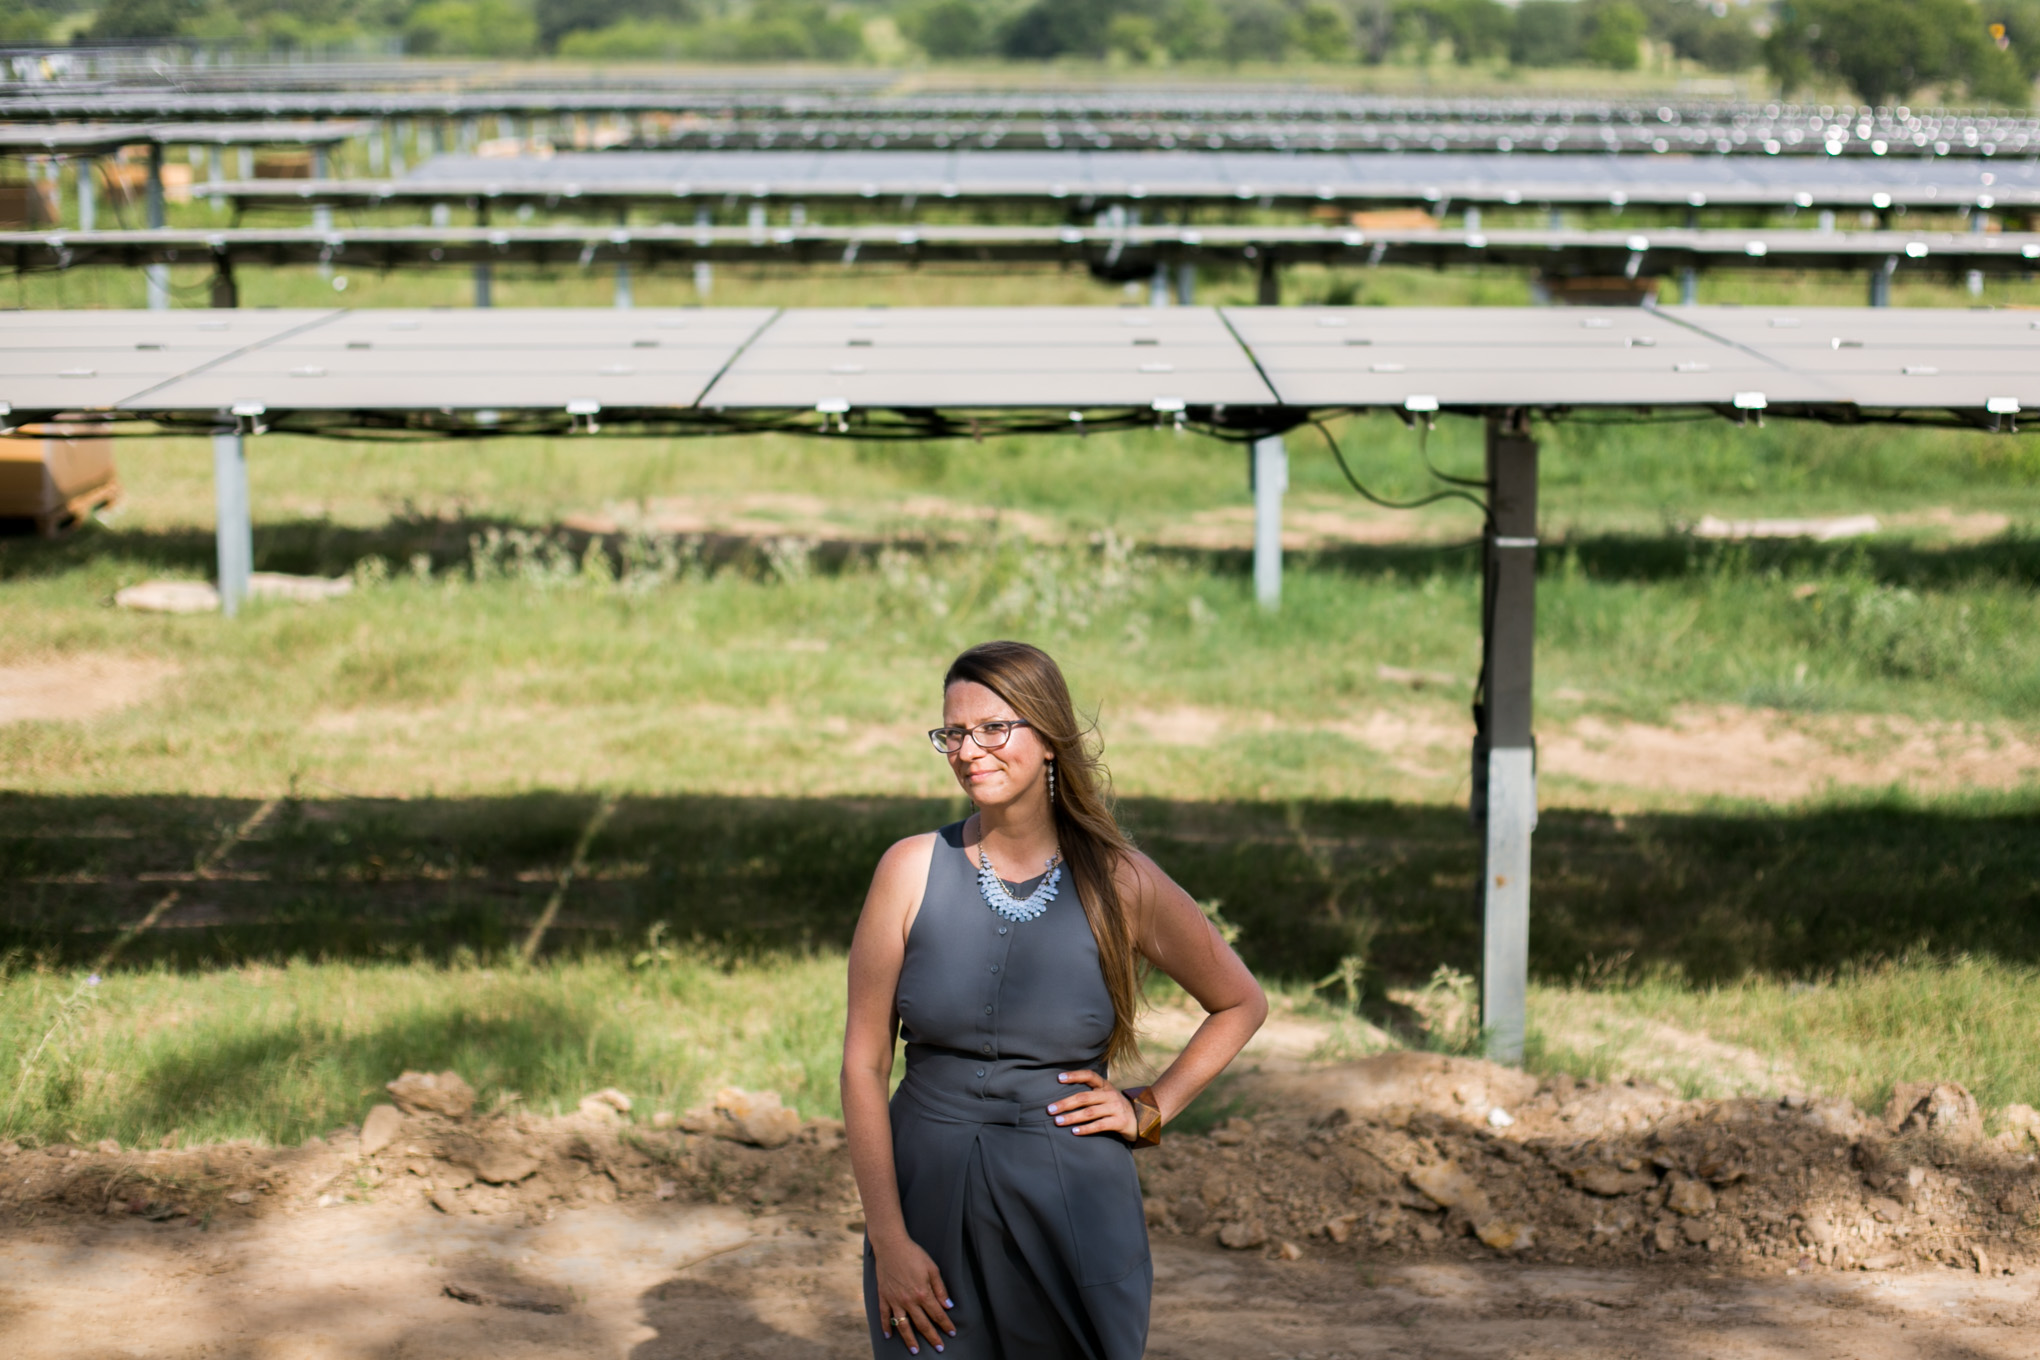 Build San Antonio Green Executive Director Anita Ledbetter wants to encourage homeowners and business owners to go solar by purchasing individual panels to offset their energy needs. Photo by Kathryn Boyd-Batstone.